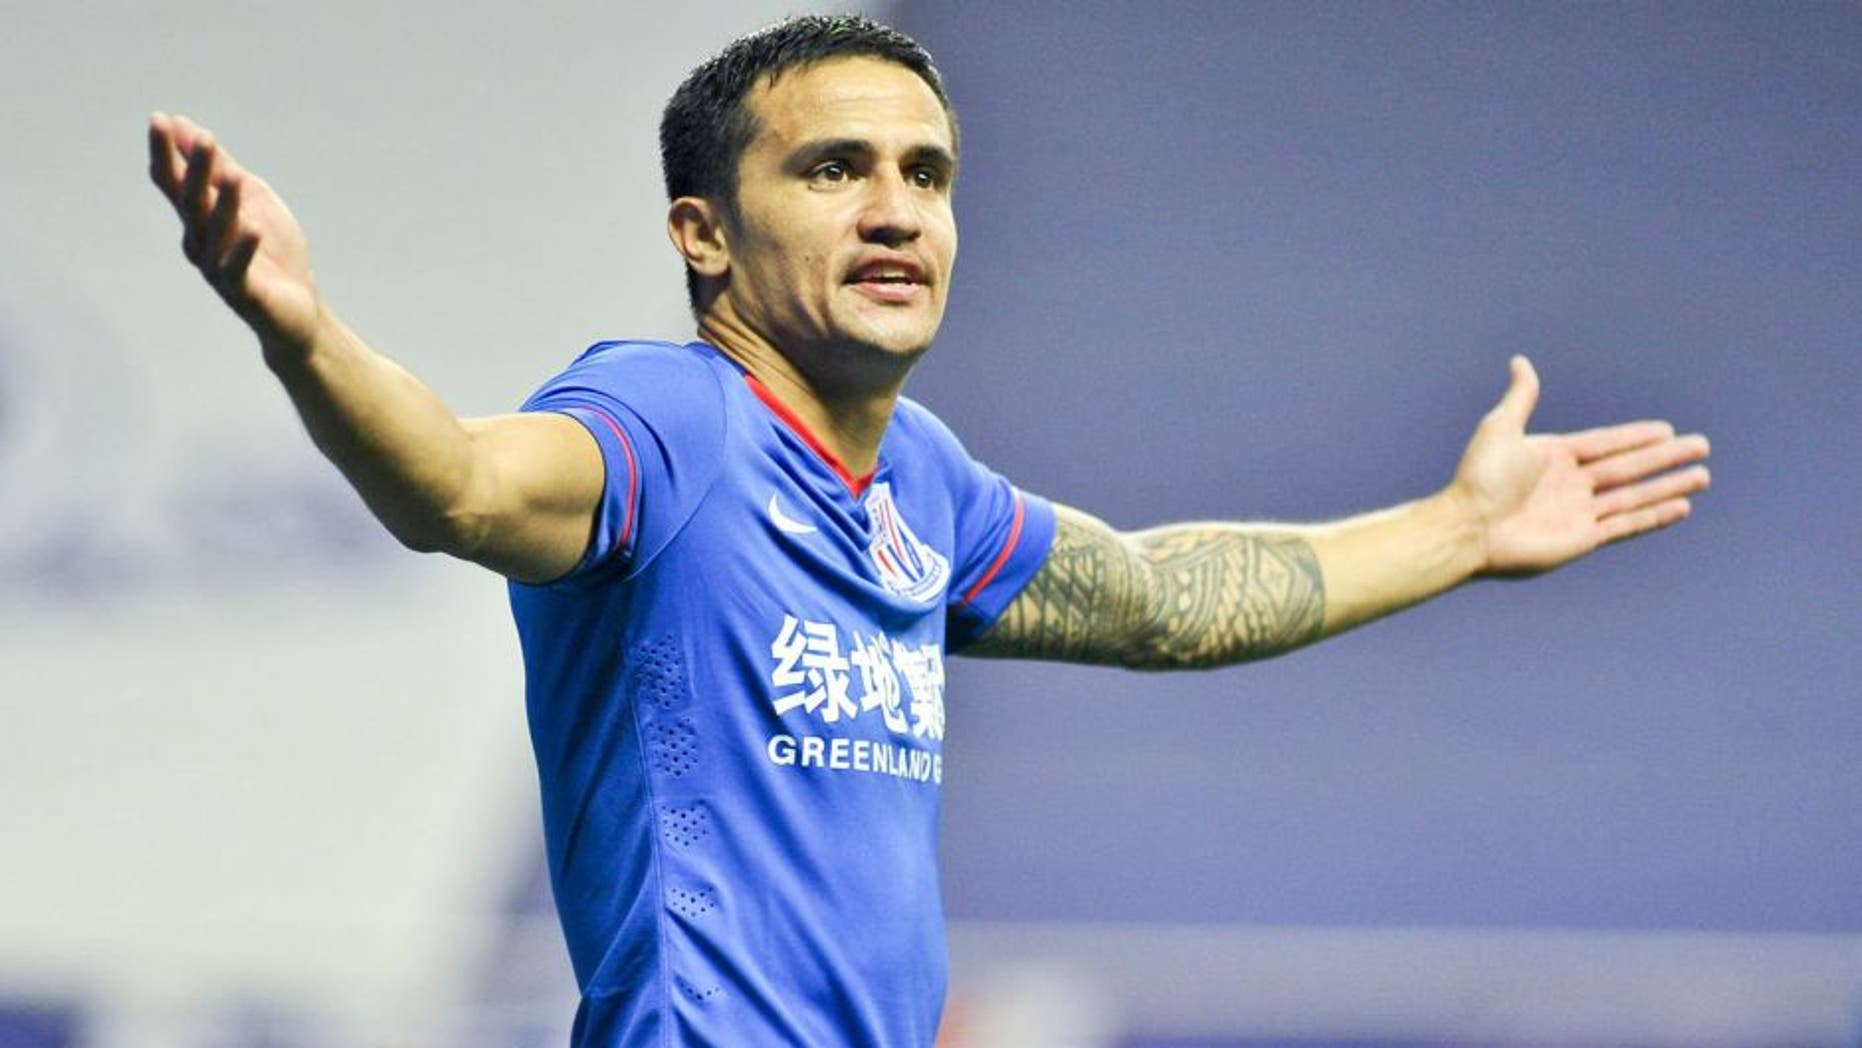 SHANGHAI, CHINA - APRIL 25: (CHINA OUT) Tim Cahill of Shanghai Greenland Shenhua celebrates a point during the Chinese Football Association Super League between Shanghai Greenland Shenhua and Hangzhou Green City at Hongkou Football Stadium on April 25, 2015 in Shanghai, China. (Photo by ChinaFotoPress/ChinaFotoPress via Getty Images)